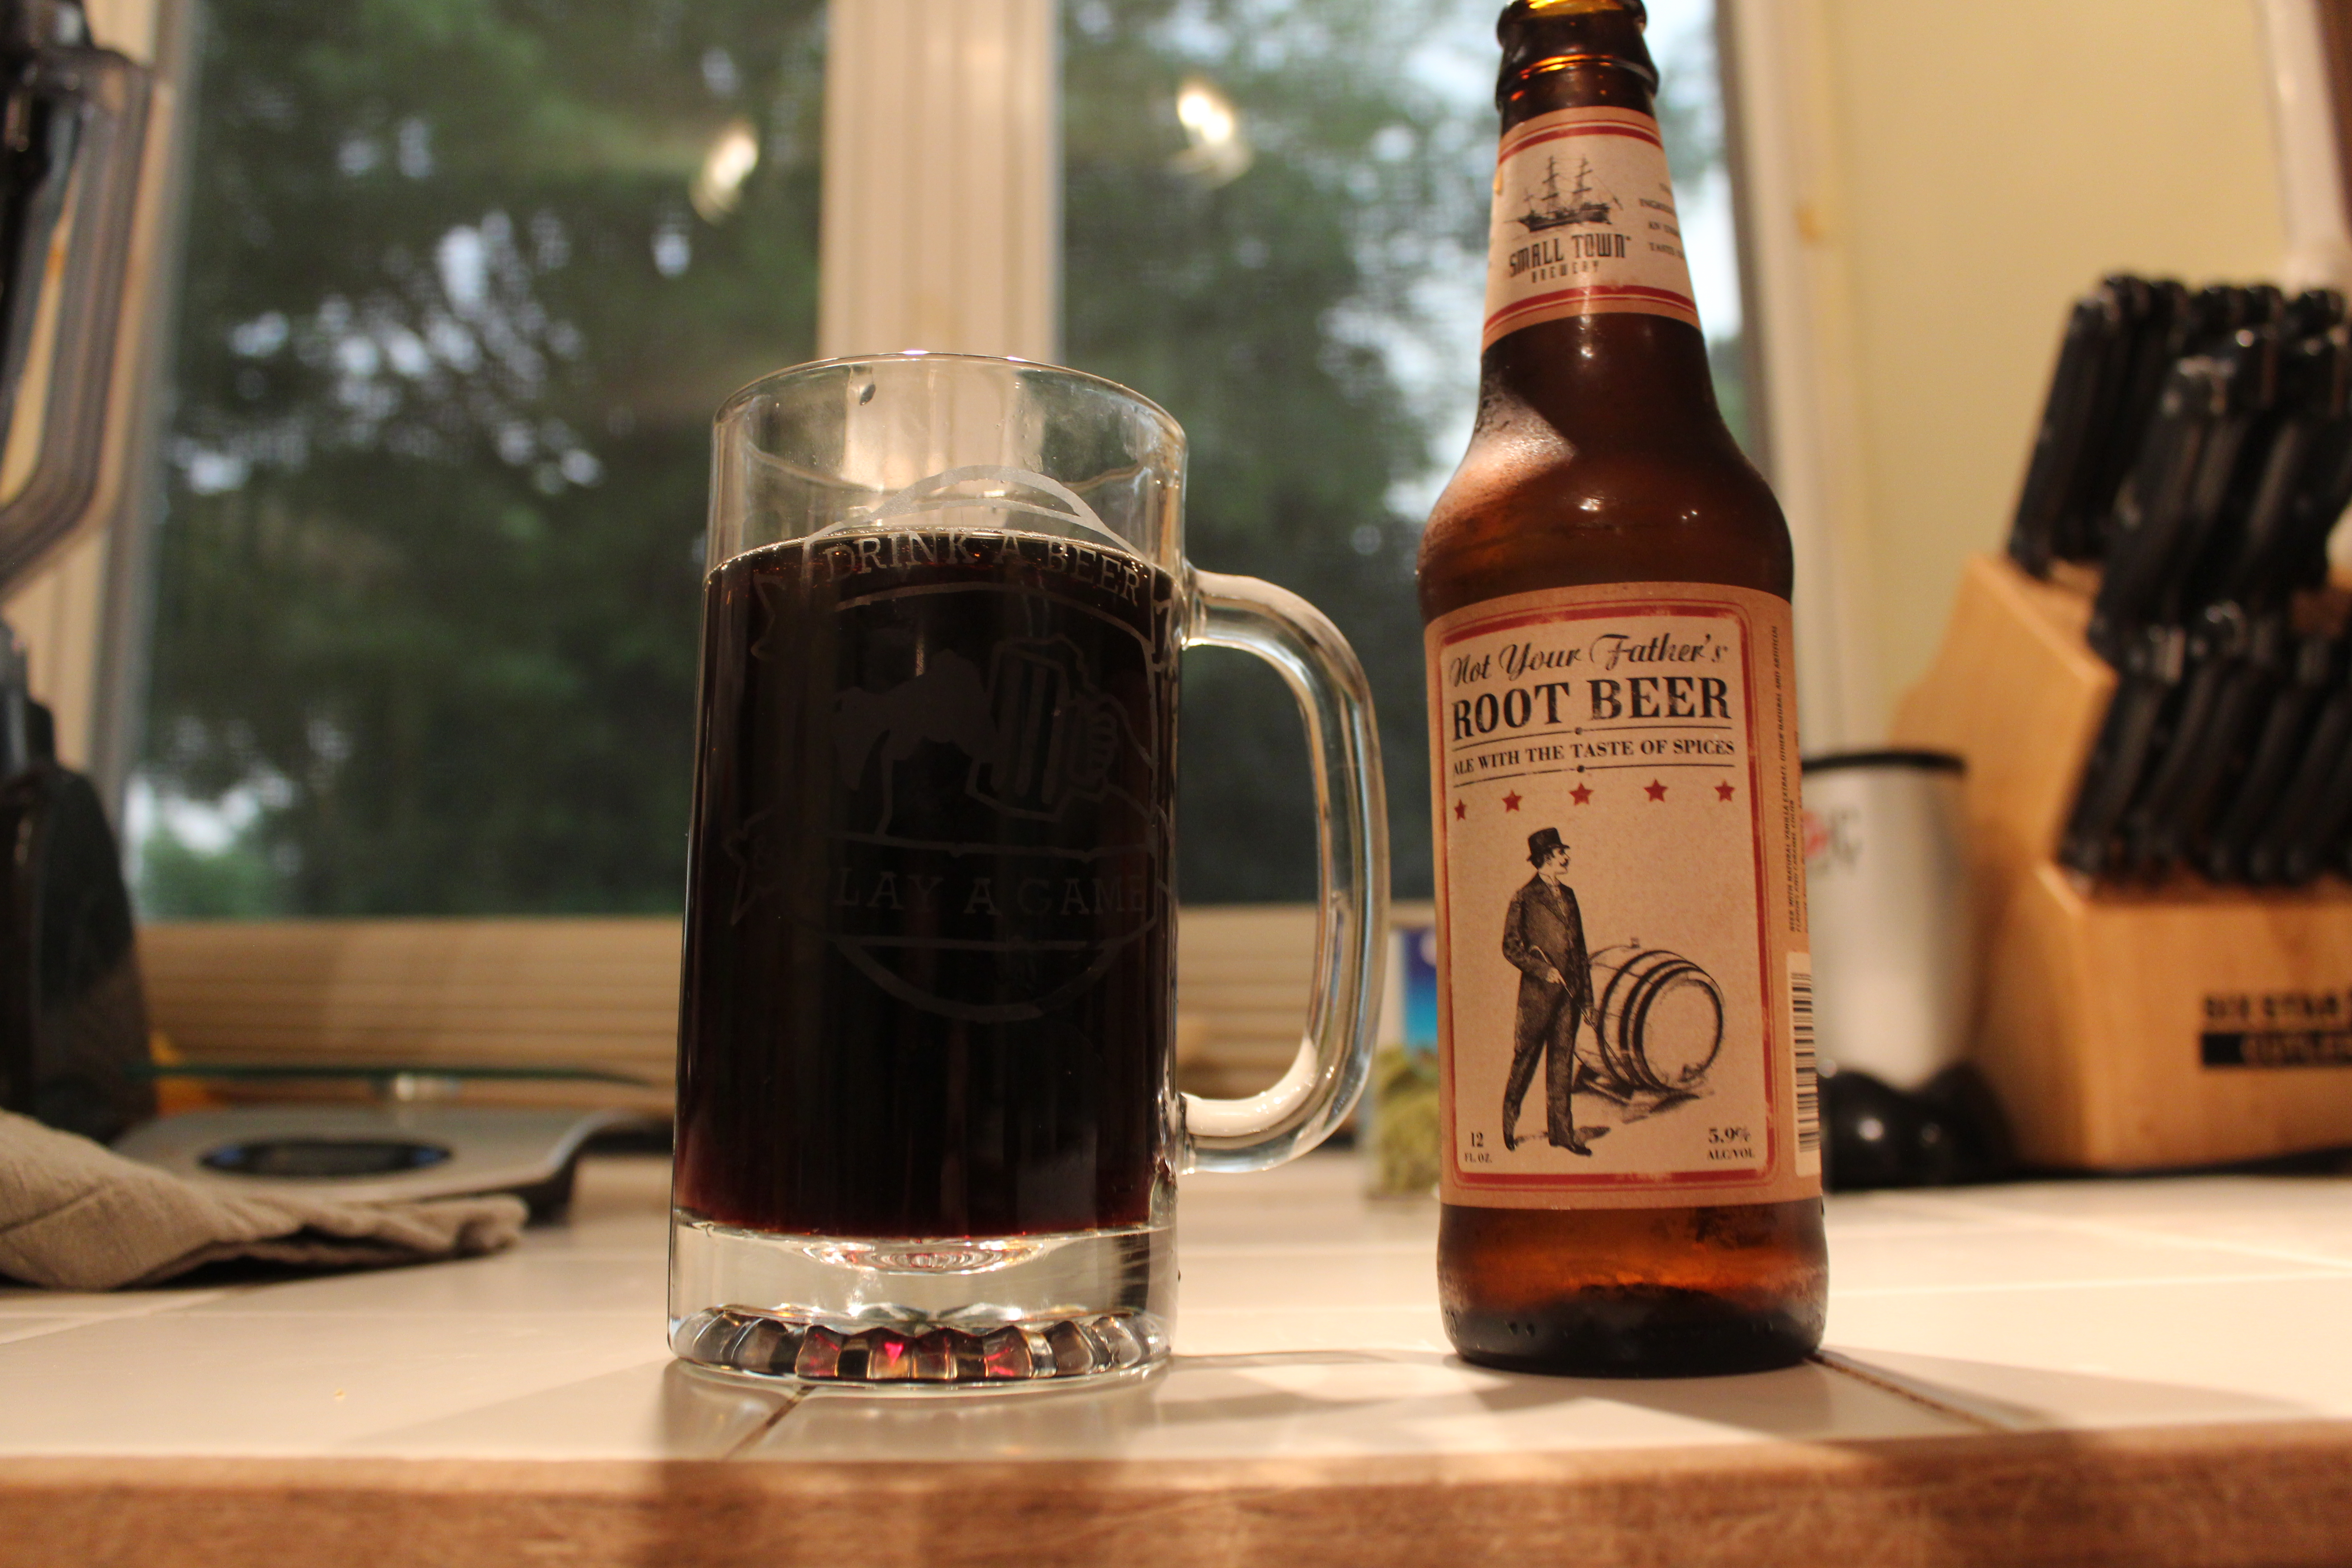 Not Your Fathers Rootbeer Nutrition Facts